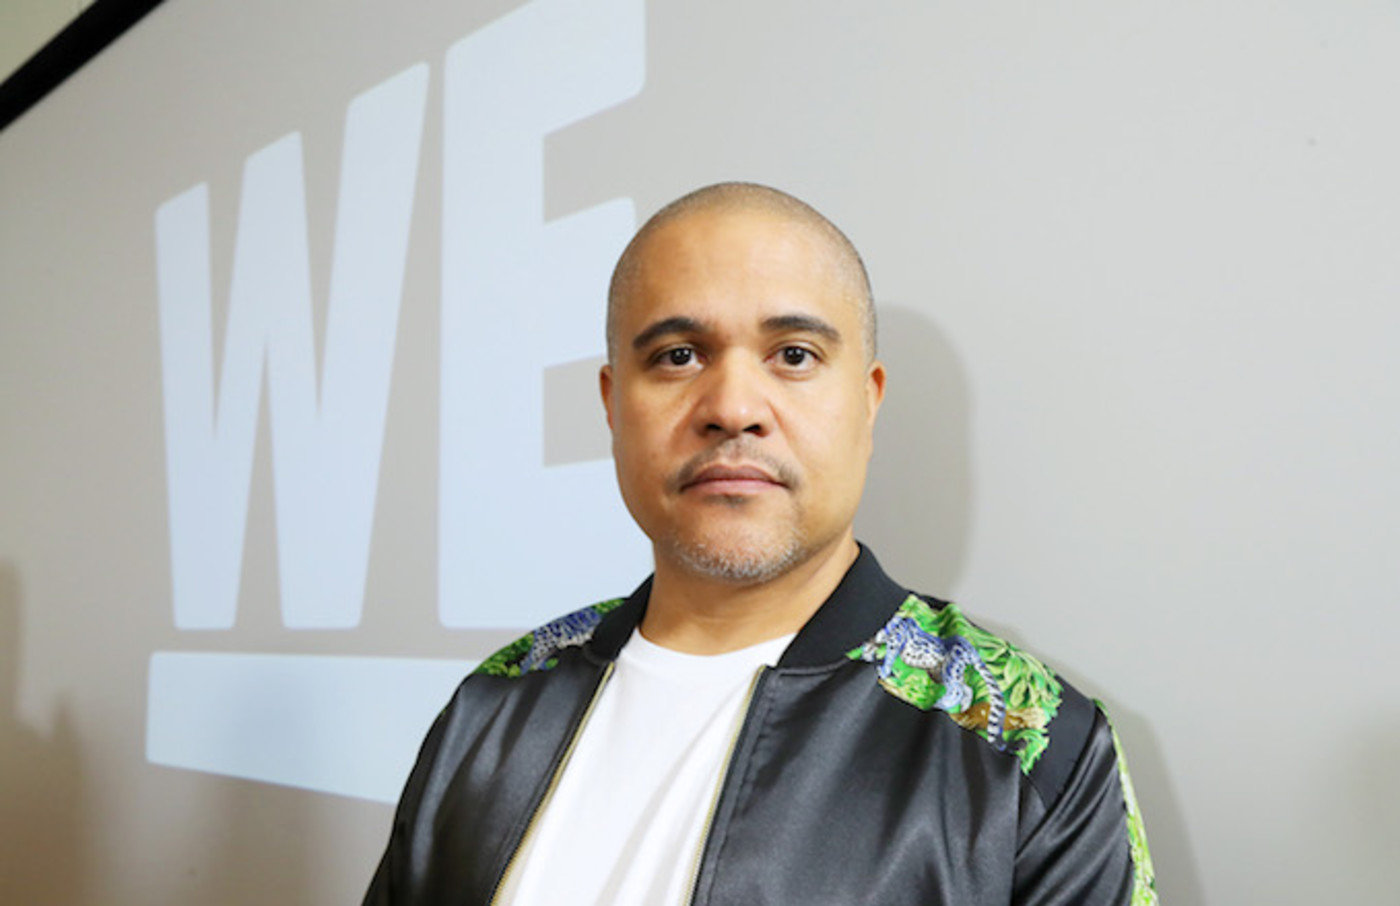 Irv Gotti attends as WEtv celebrates the premieres of Growing Up Hip Hop New York.